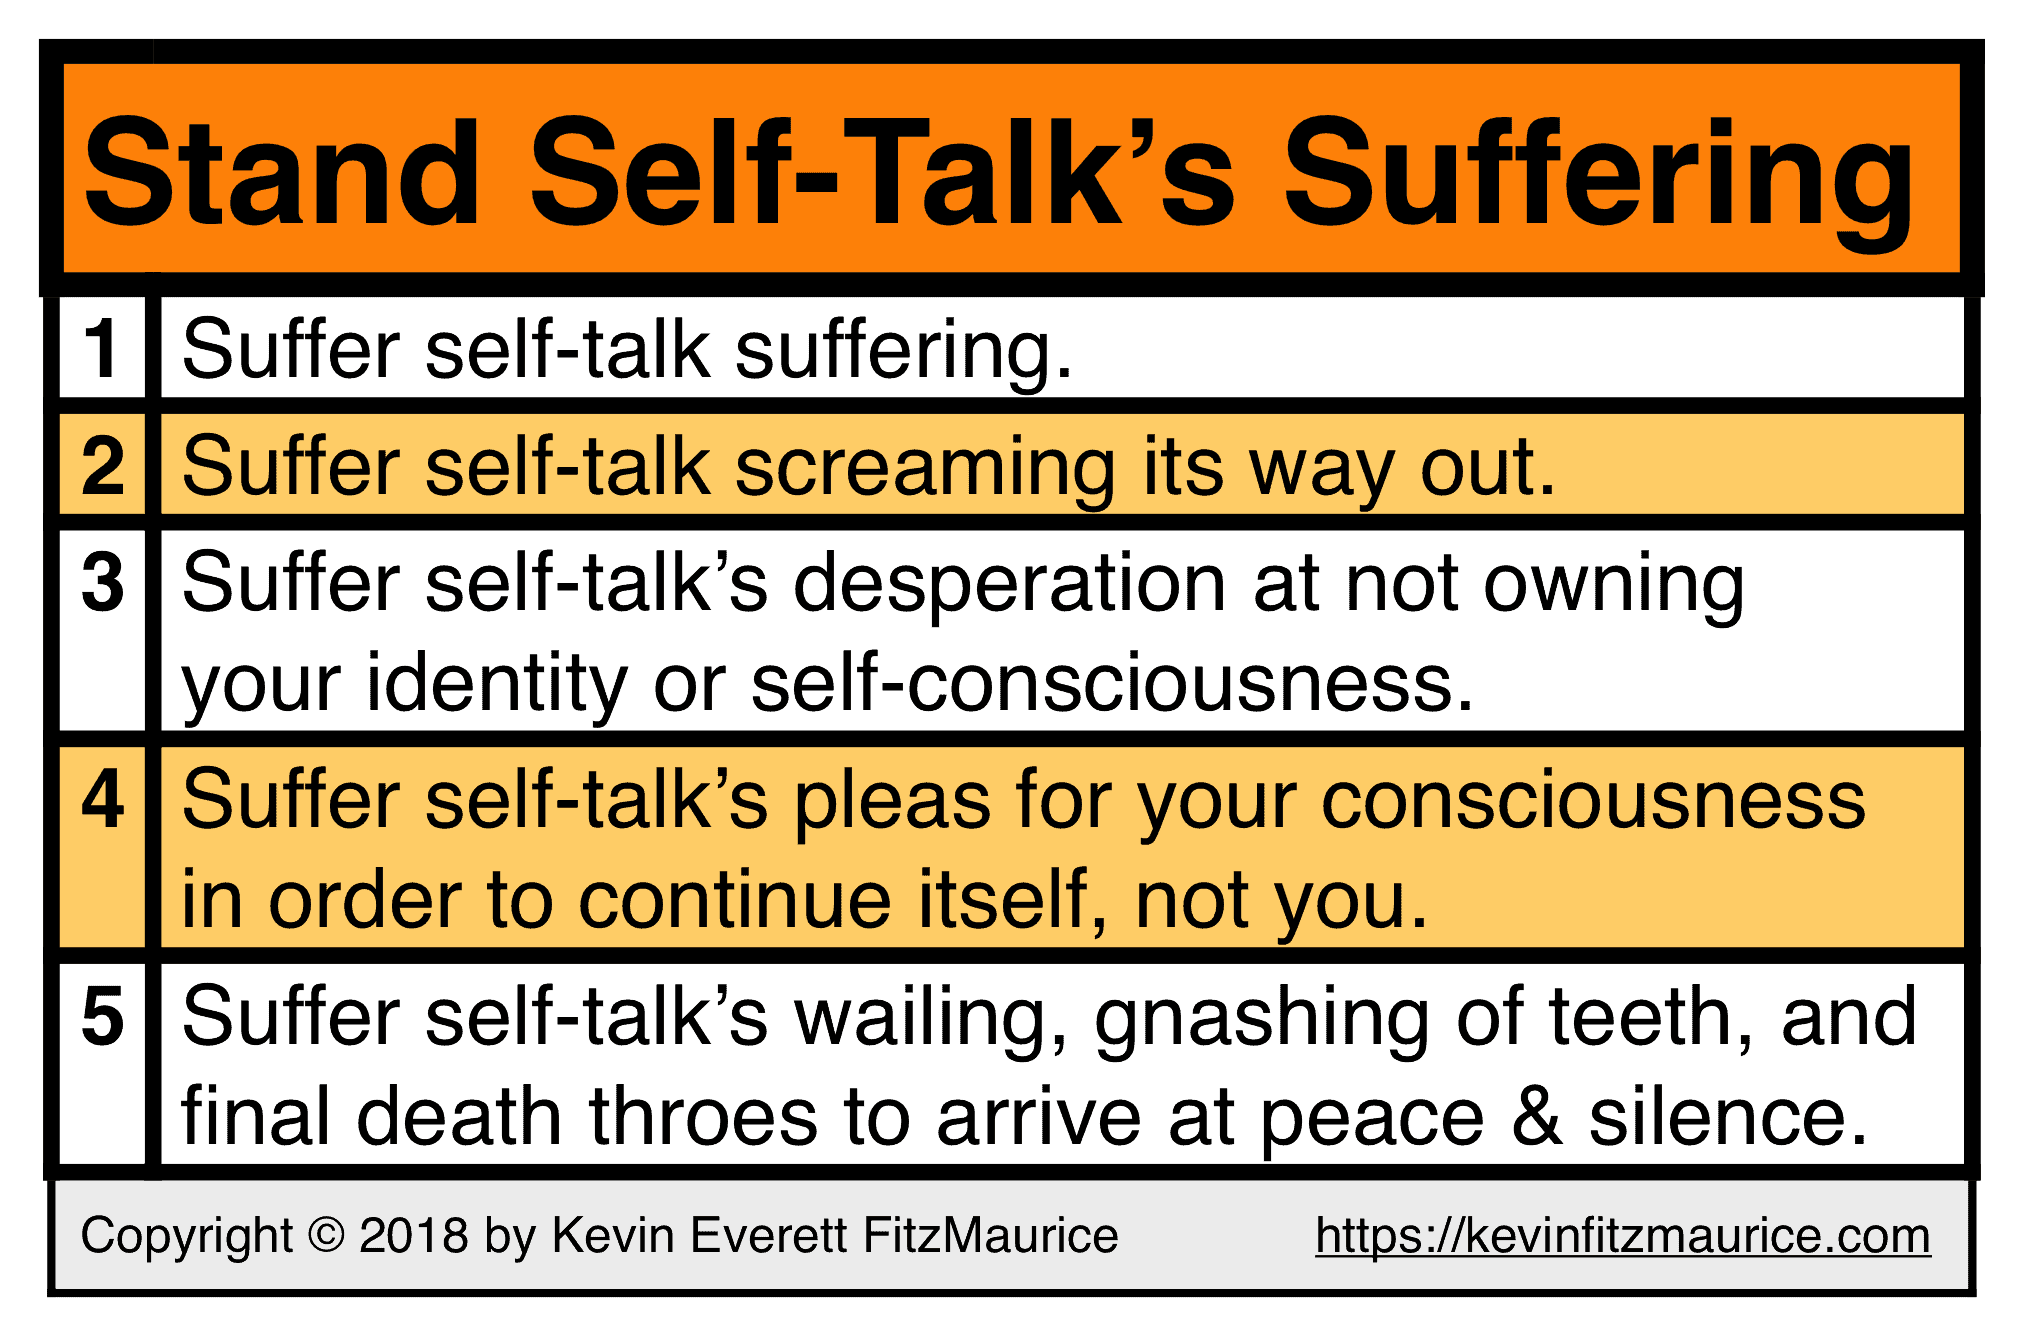 Stand Self-Talk's Suffering